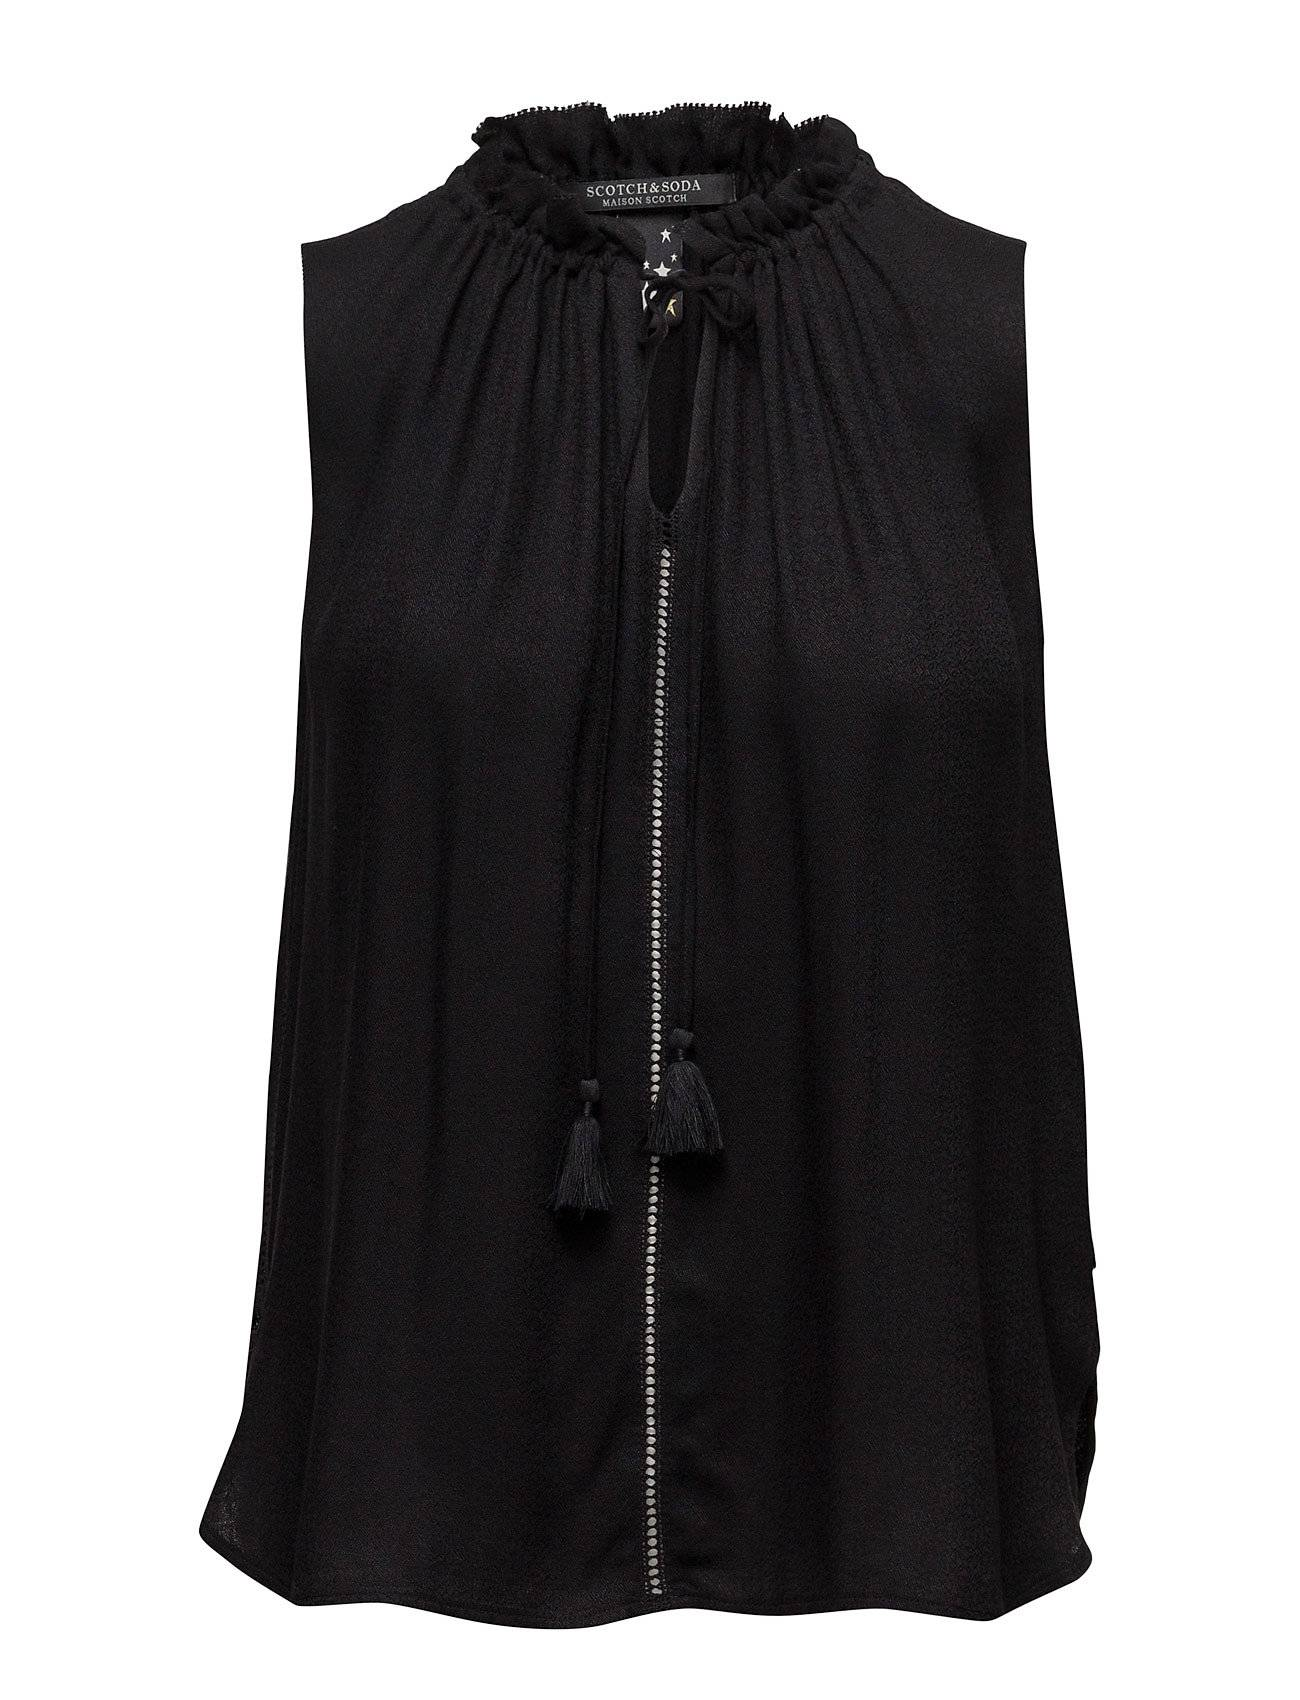 Scotch & Soda Sleeveless Top With Ruffle Neckline And Ruffle Inserts